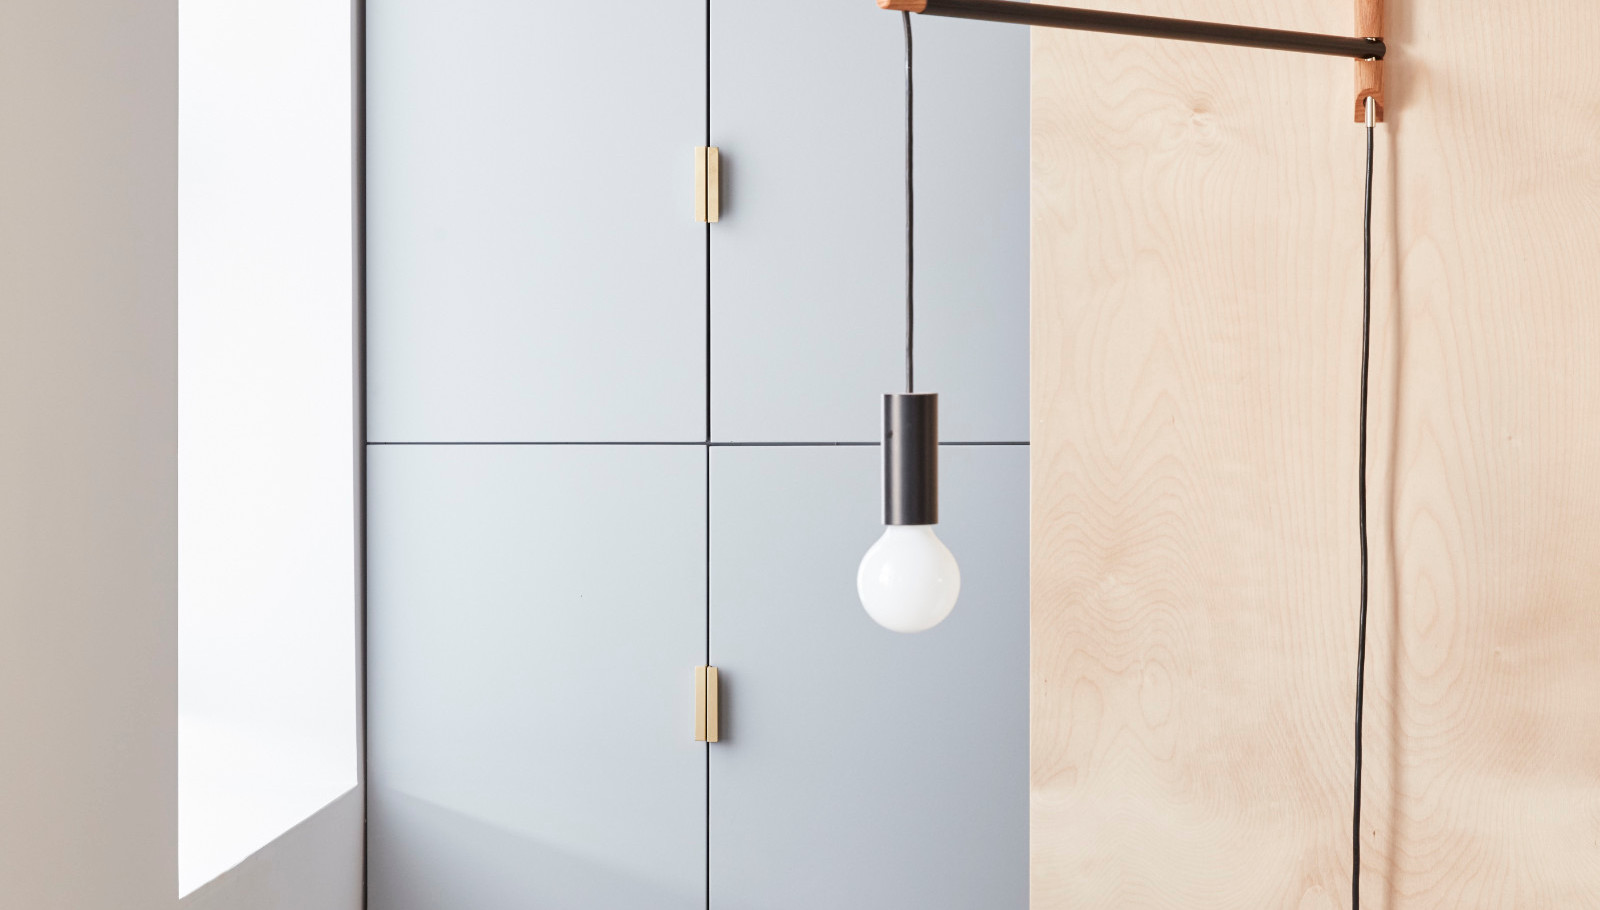 Brass pulls add character to this walk in closet area